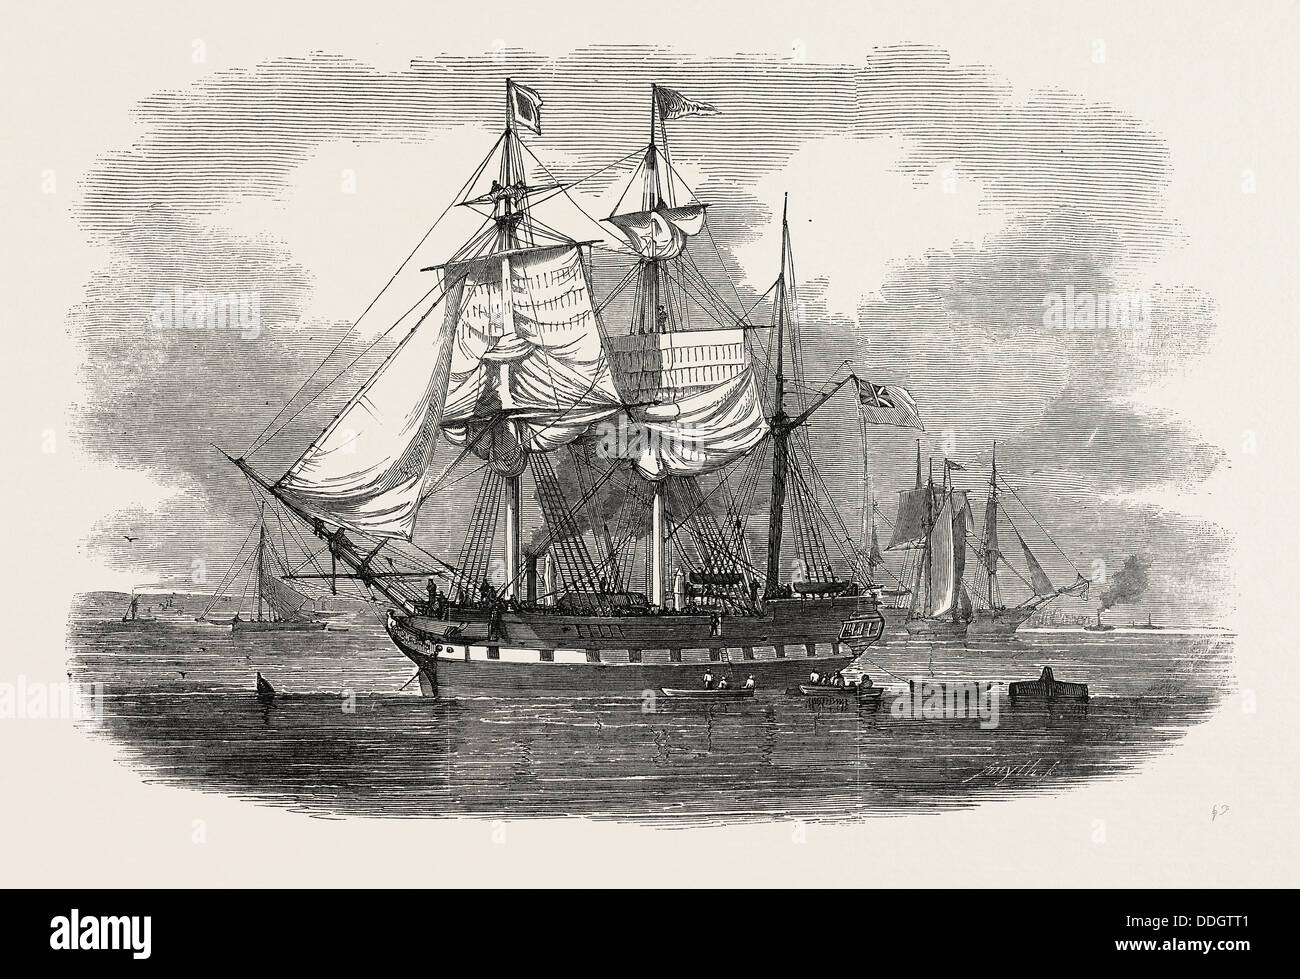 THE EMIGRANT SHIP 'ARTEMISIA,' BOUND FOR MORETON BAY, NEW SOUTH WALES, 1848 - Stock Image